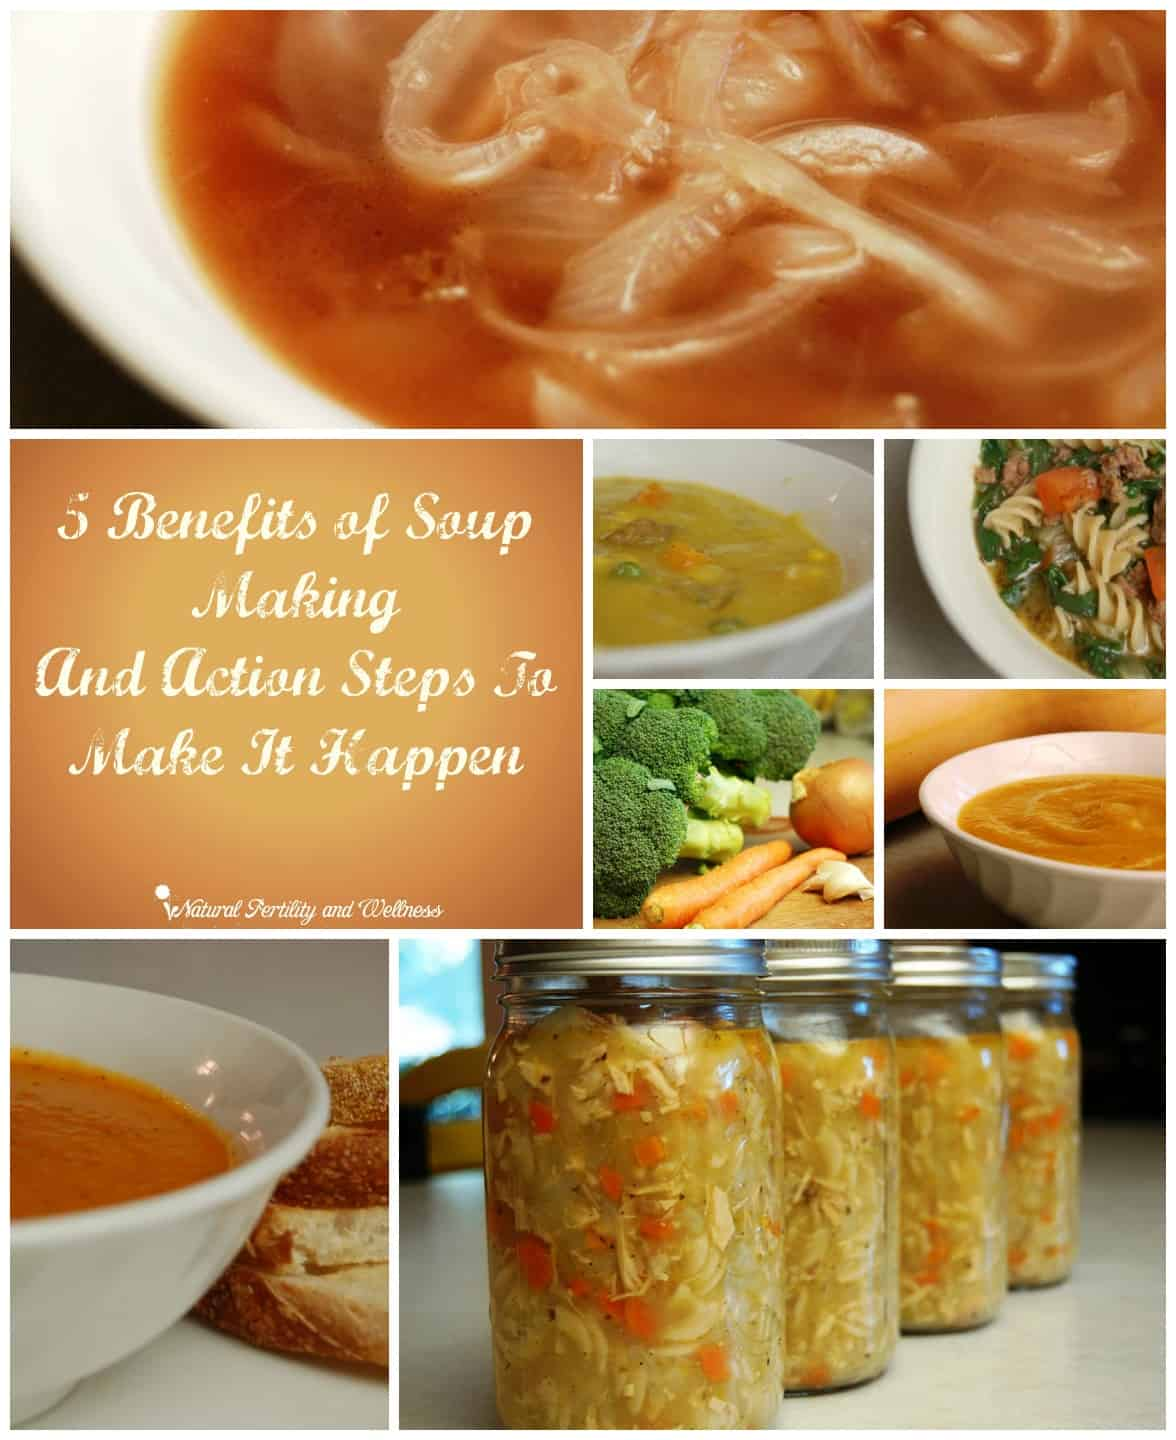 5 Healing benefits of soup making and action steps to make it happen